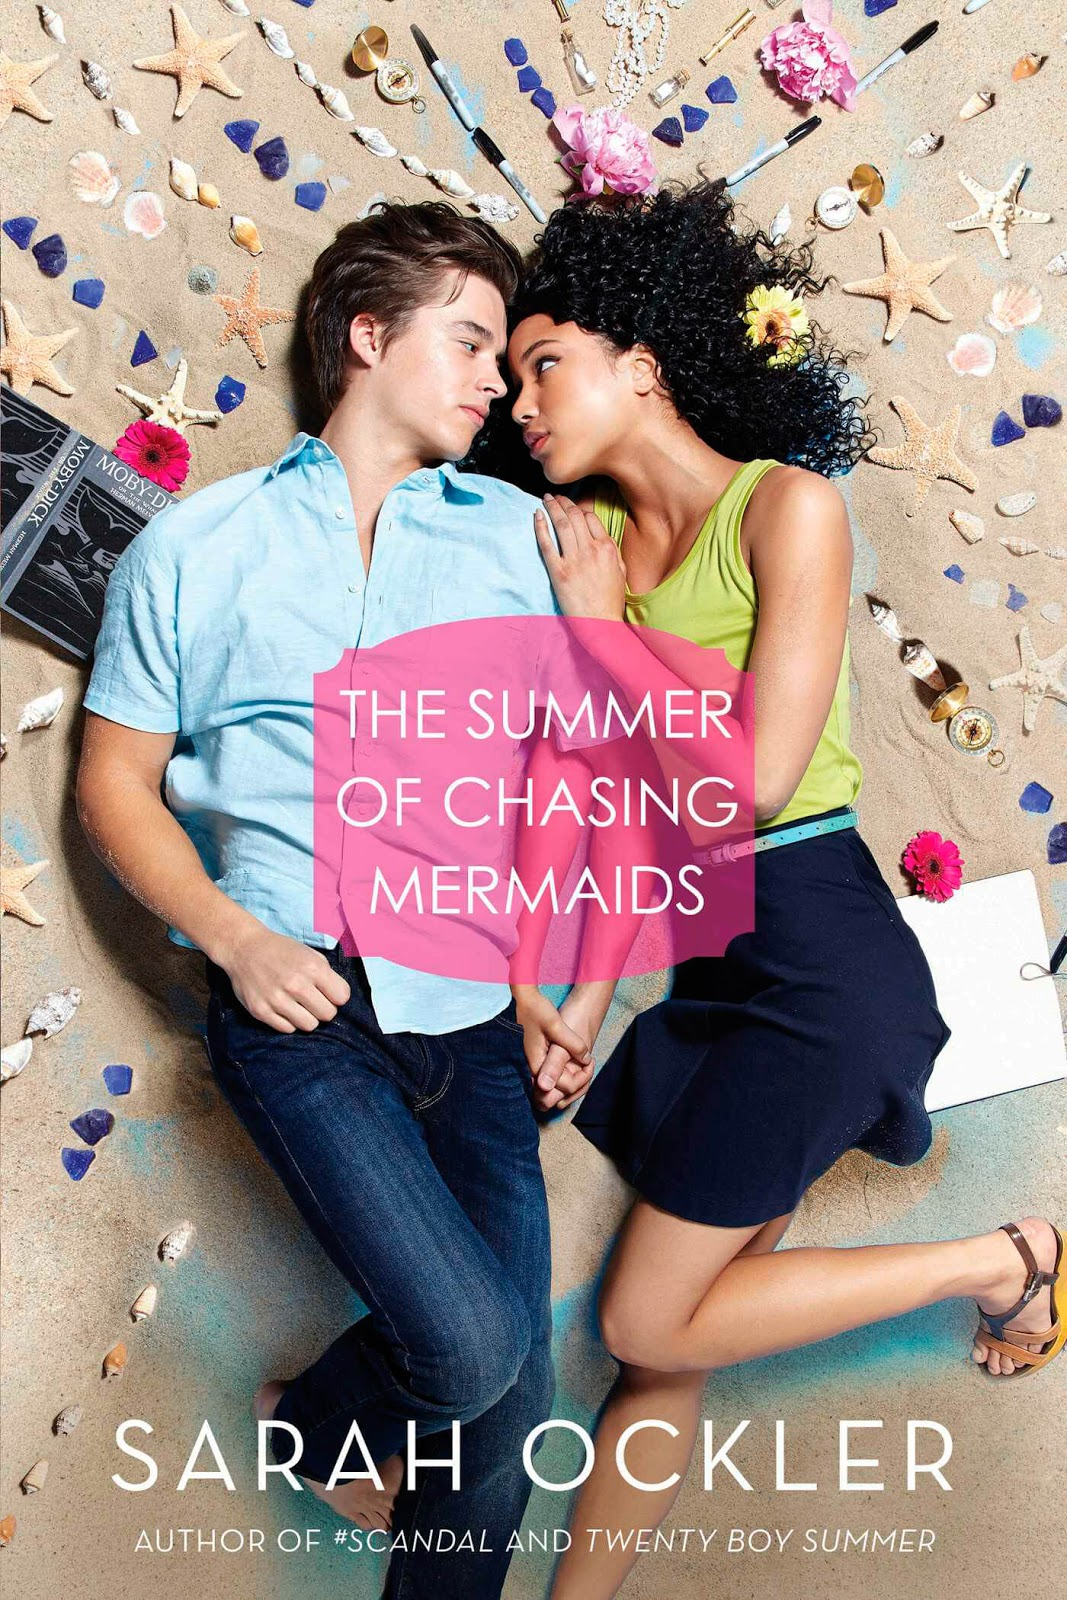 The Summer of Chasing Mermaids by Sarah Ockler